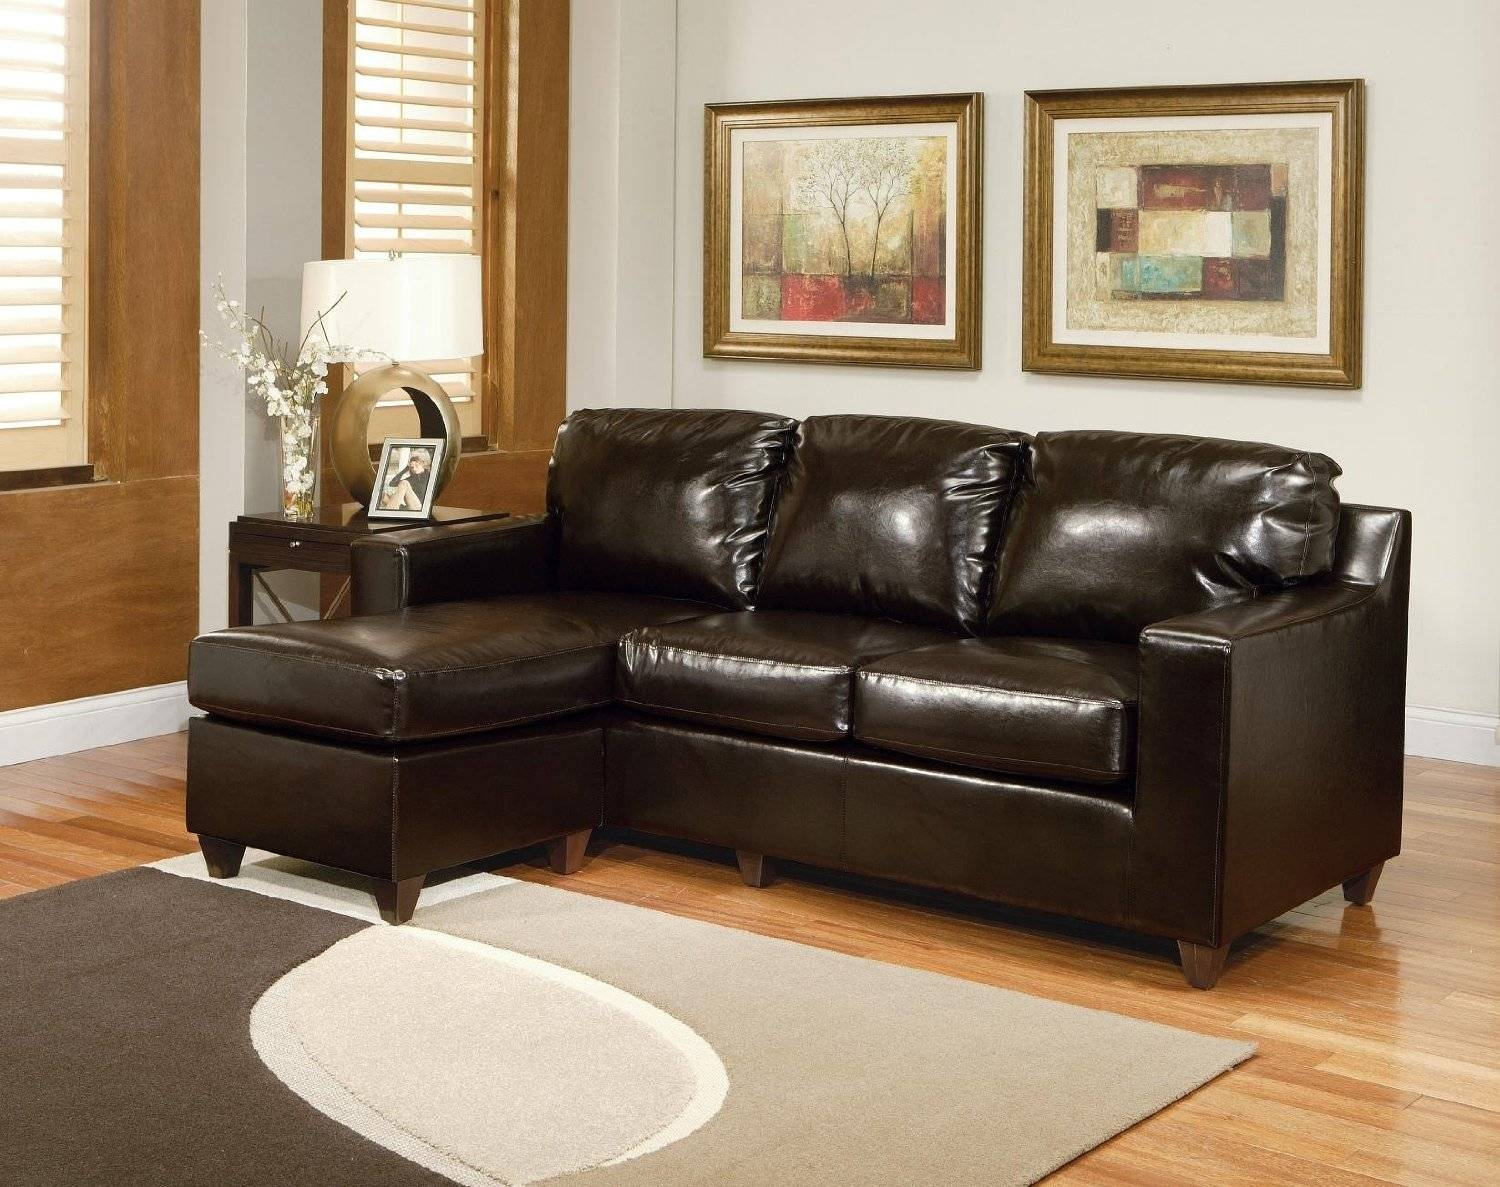 Sofas Center : Stirring Small Leather Sofa Image Ideas Distressed with Small Scale Sofa Bed (Image 24 of 25)